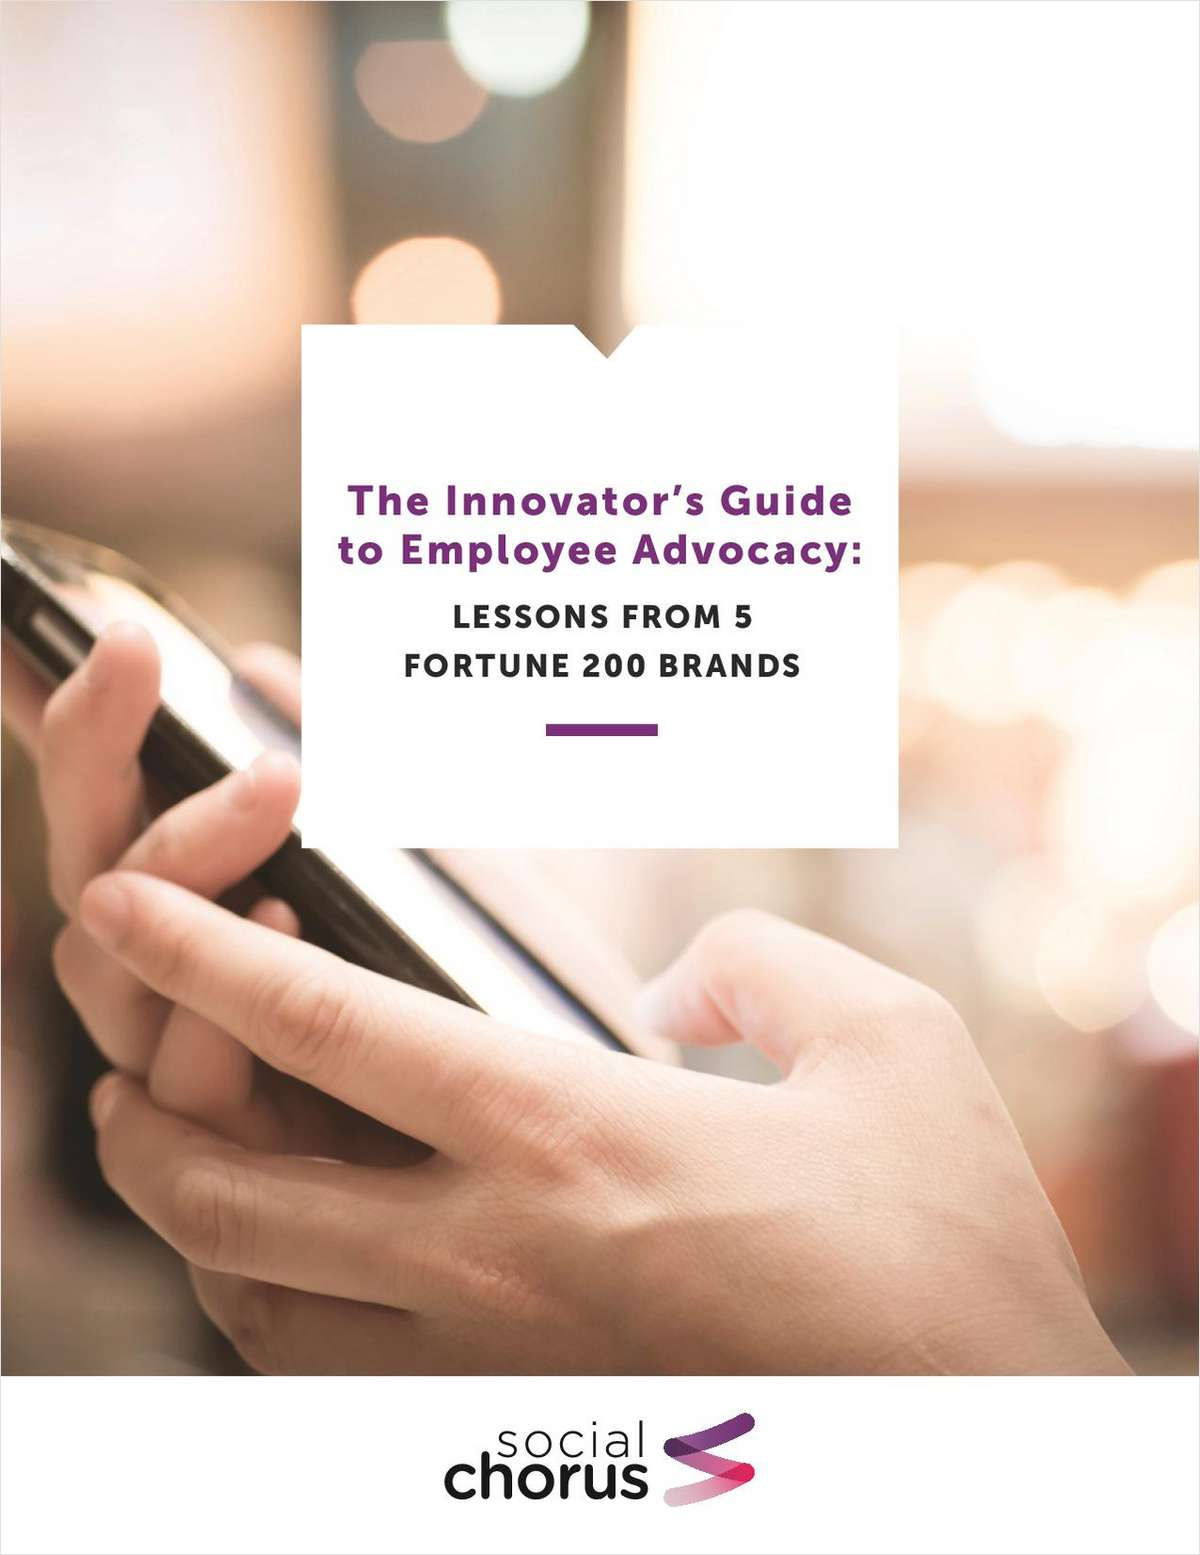 The Innovator's Guide to Employee Advocacy